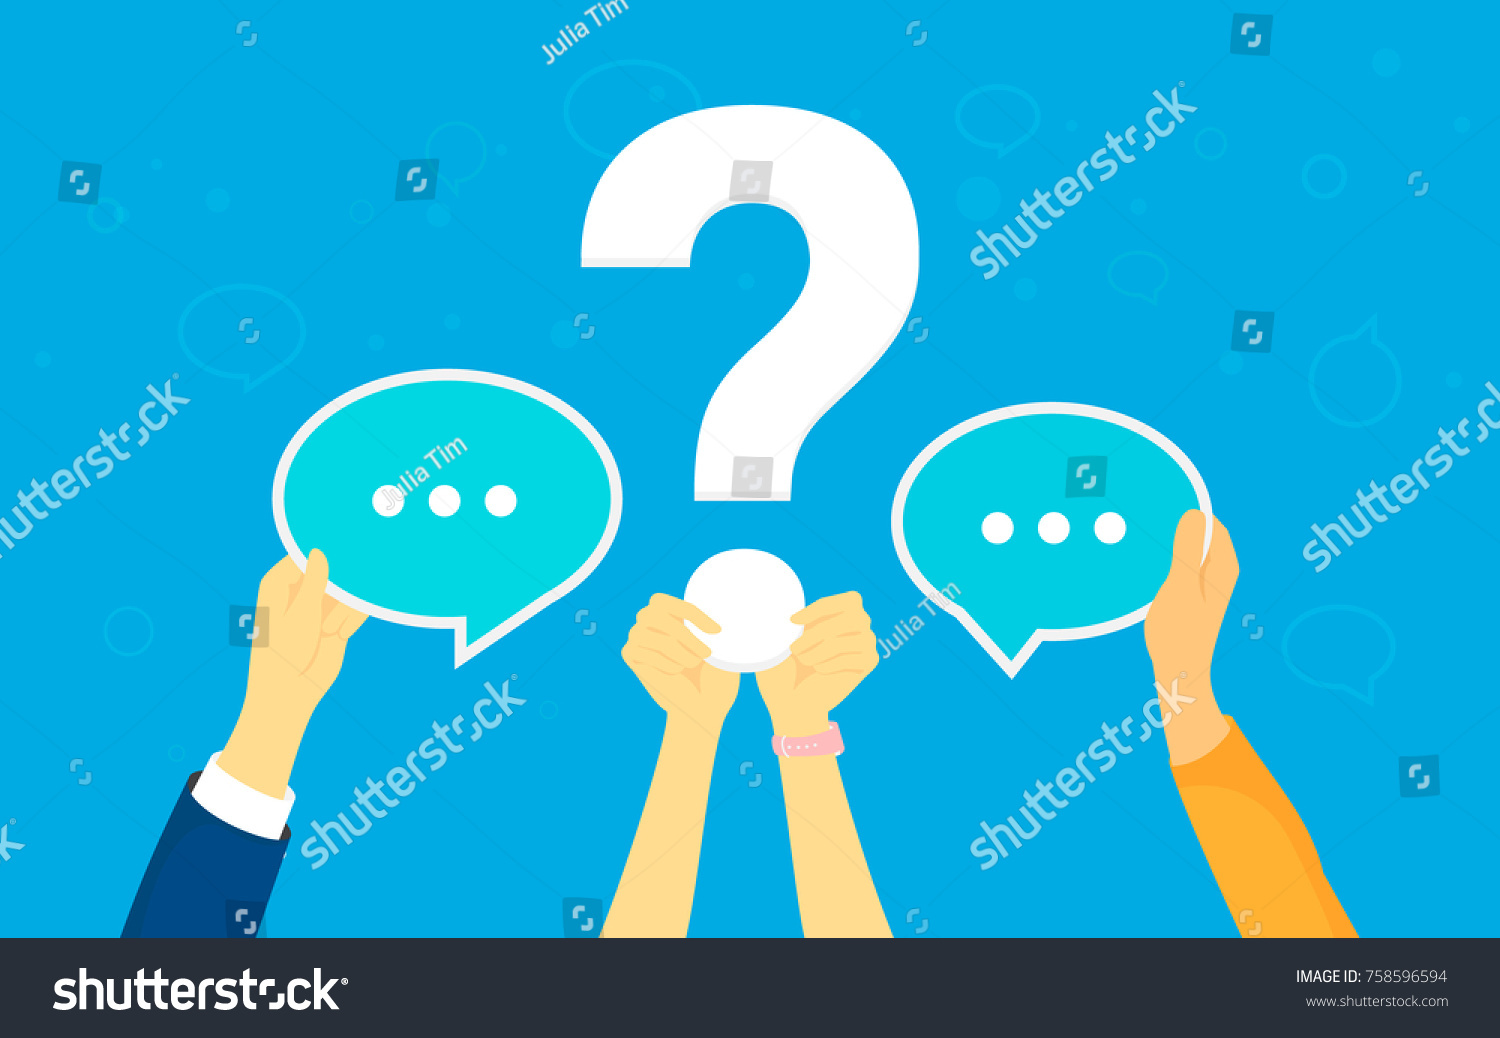 Big question concept vector illustration texting stock vector big question concept vector illustration of texting to live chat asking for help via internet buycottarizona